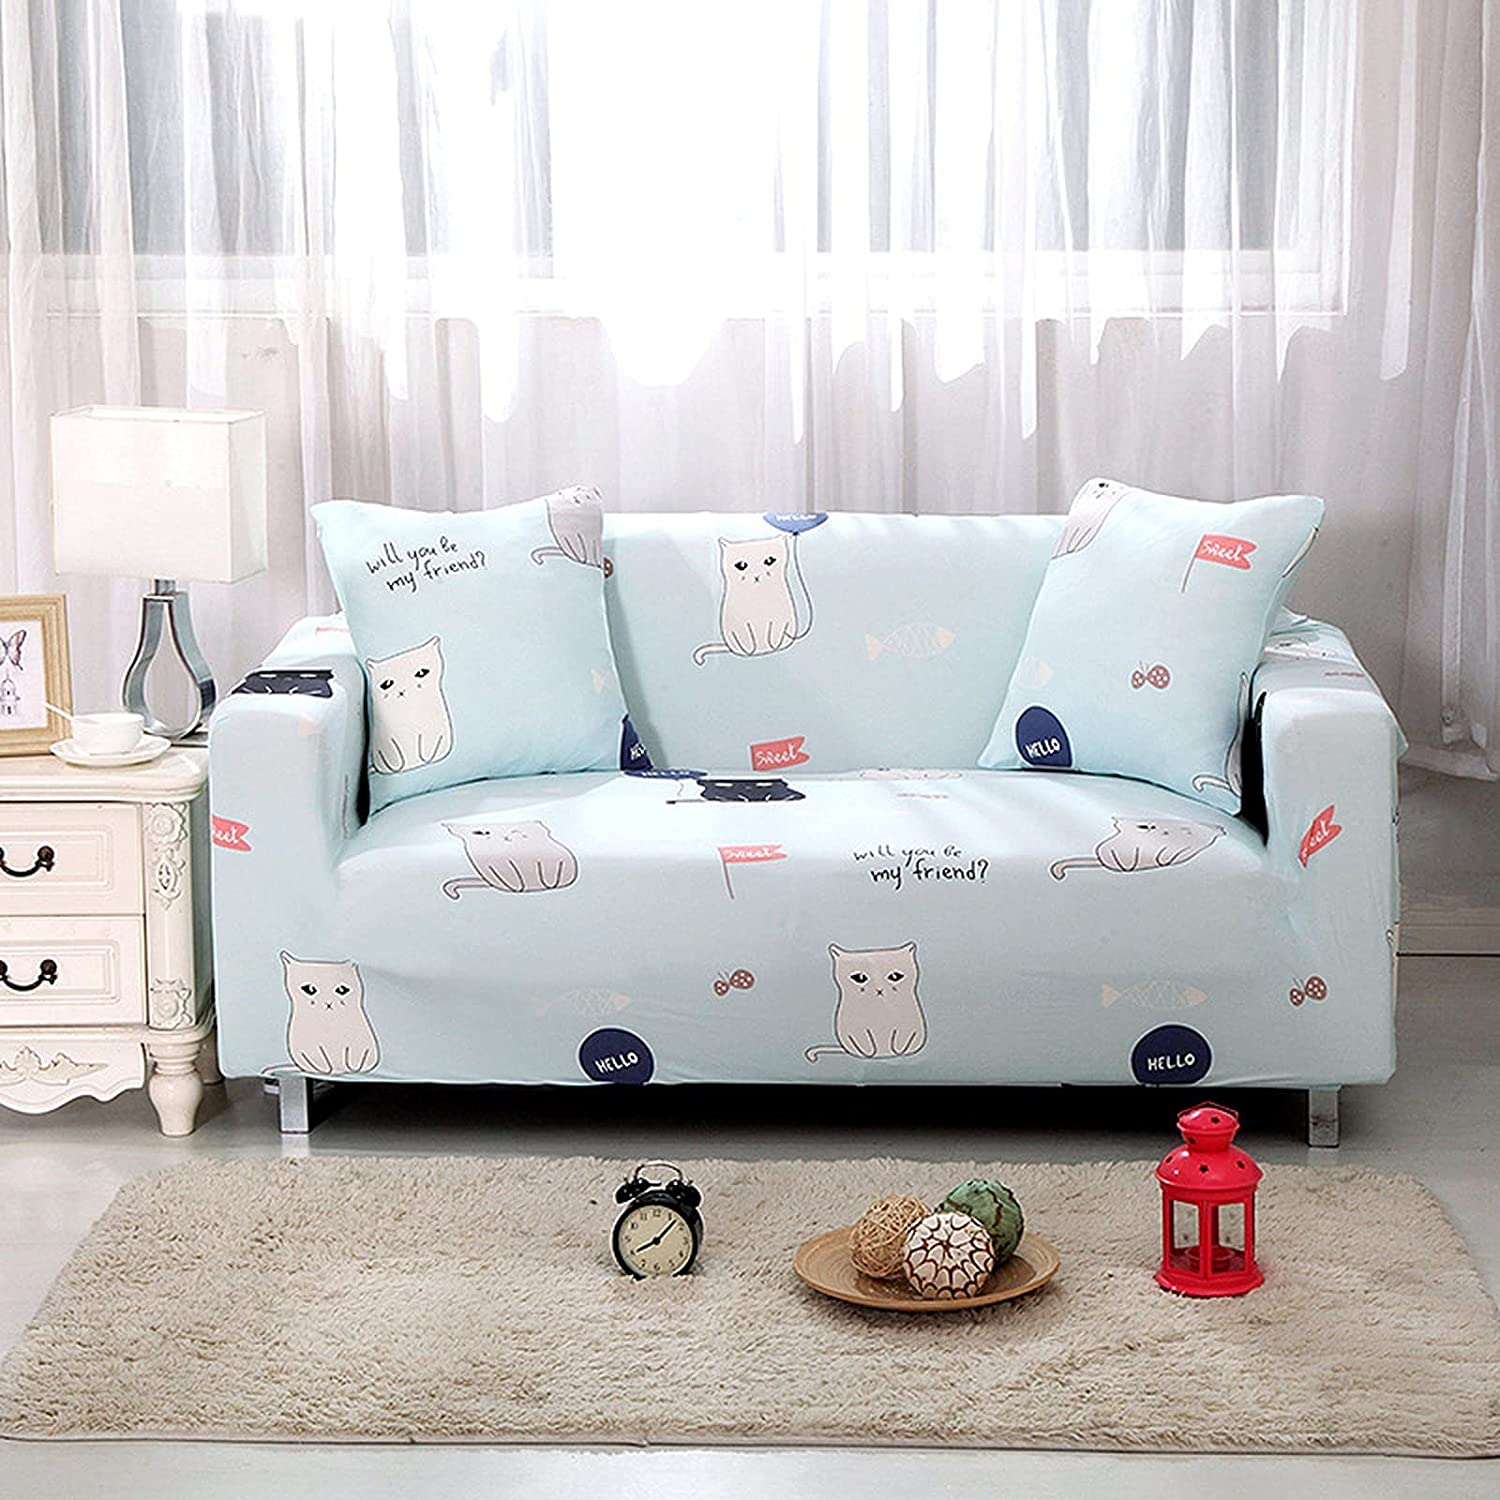 Luxury Cover 1 2 3 4 Sectional Seat Product Printed Sofa Slipcov Stretch Max 52% OFF